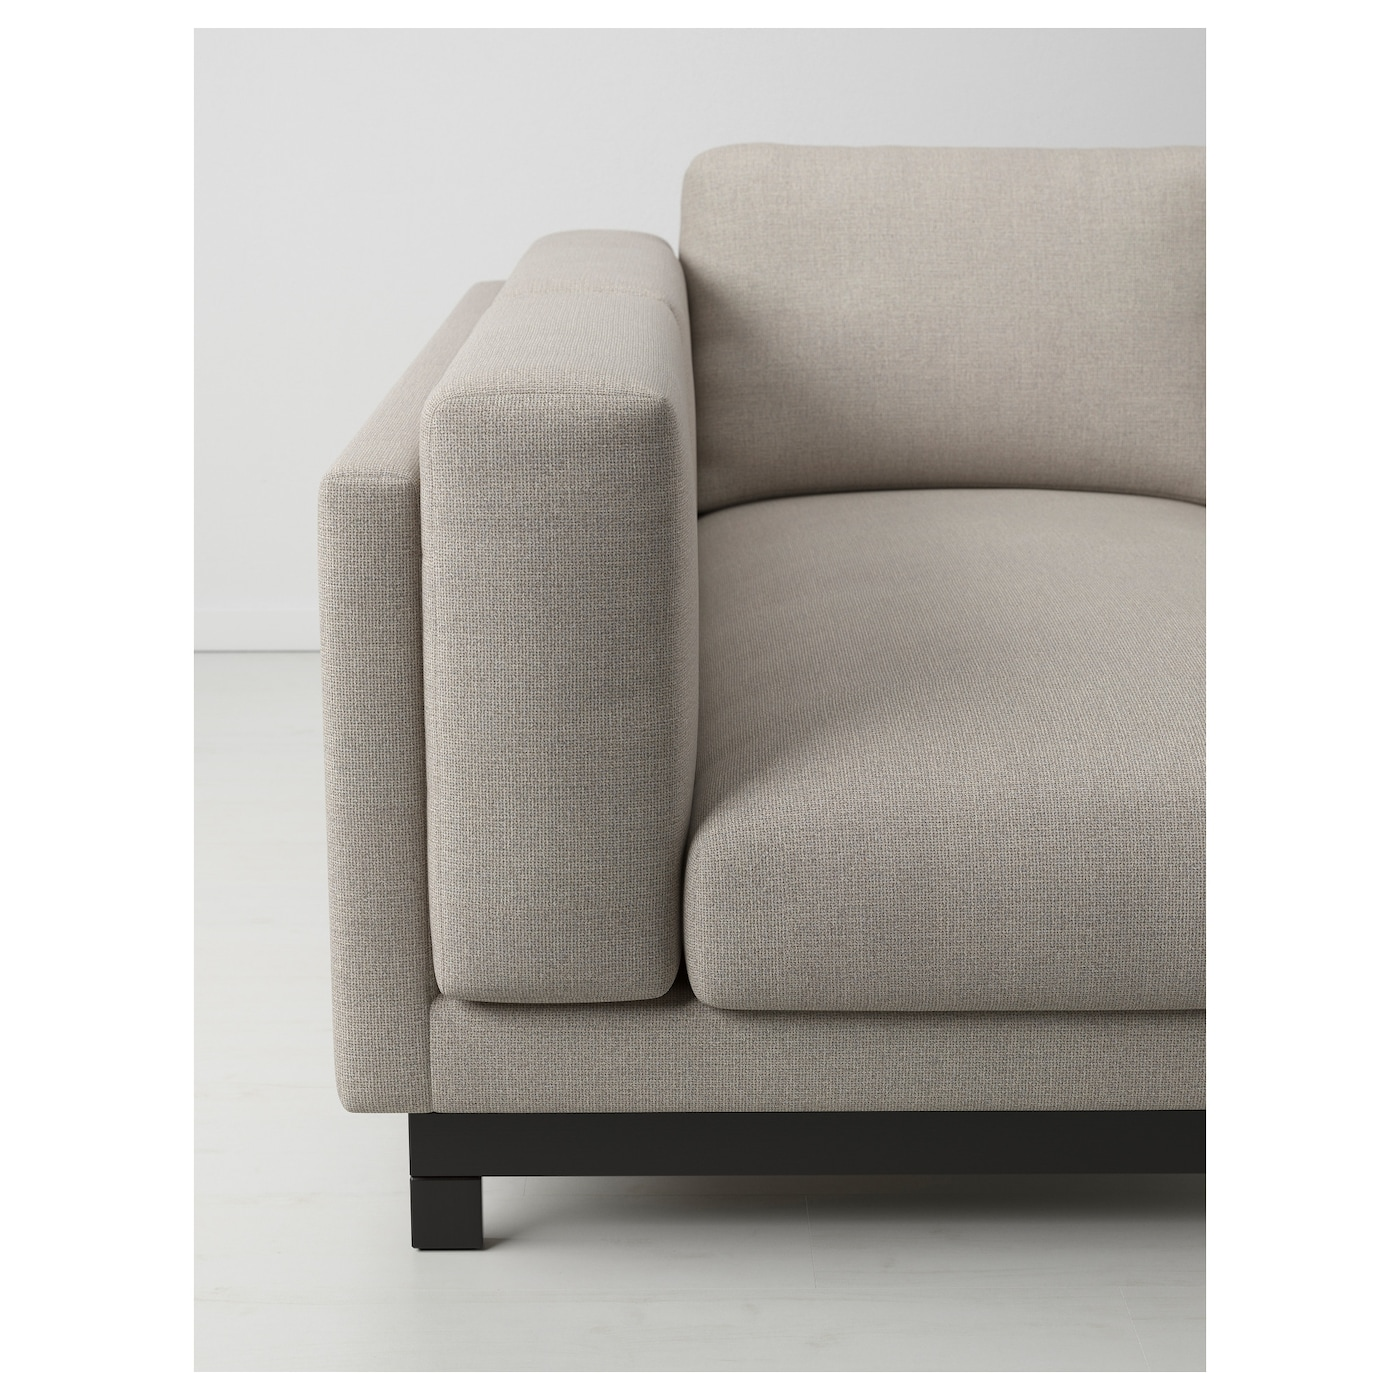 NOCKEBY Legs for 3 seat sofa With chaise longue wood IKEA